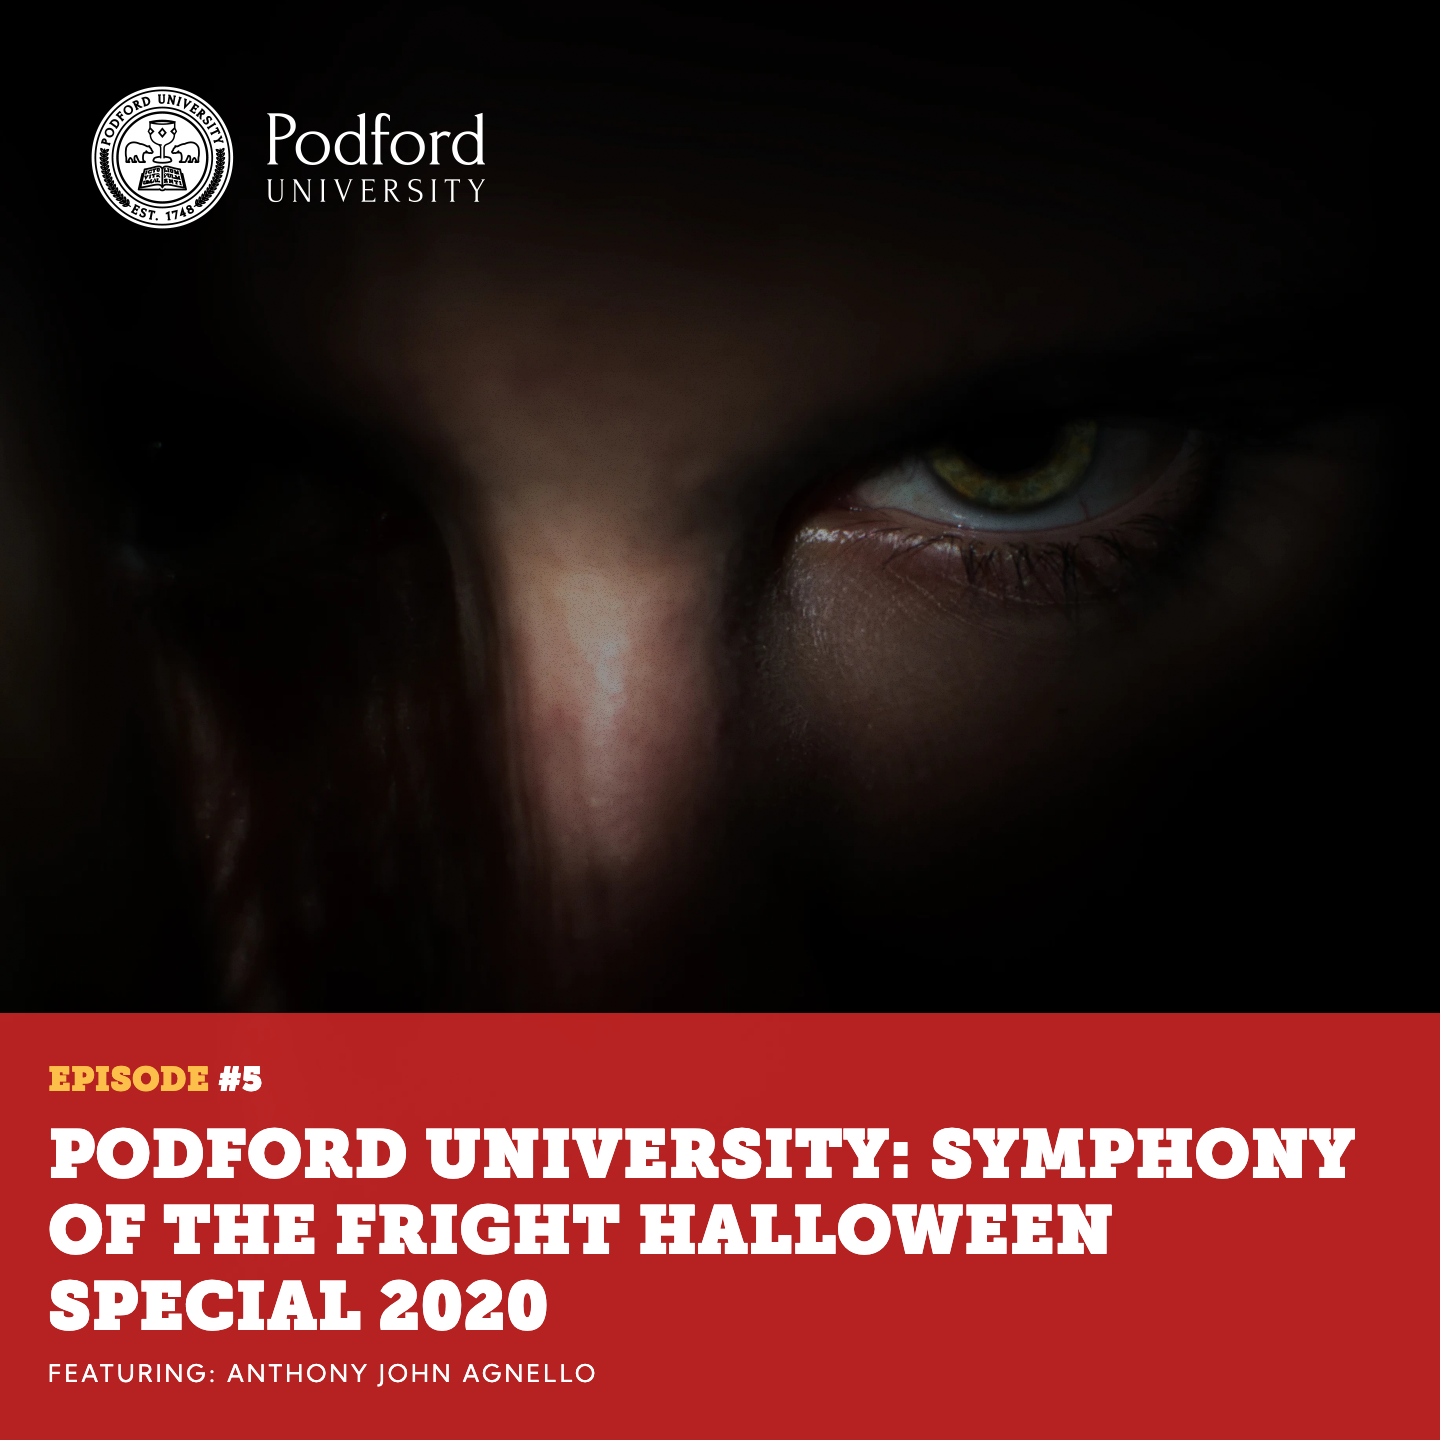 Podford University: Symphony of the Fright Halloween Special 2020